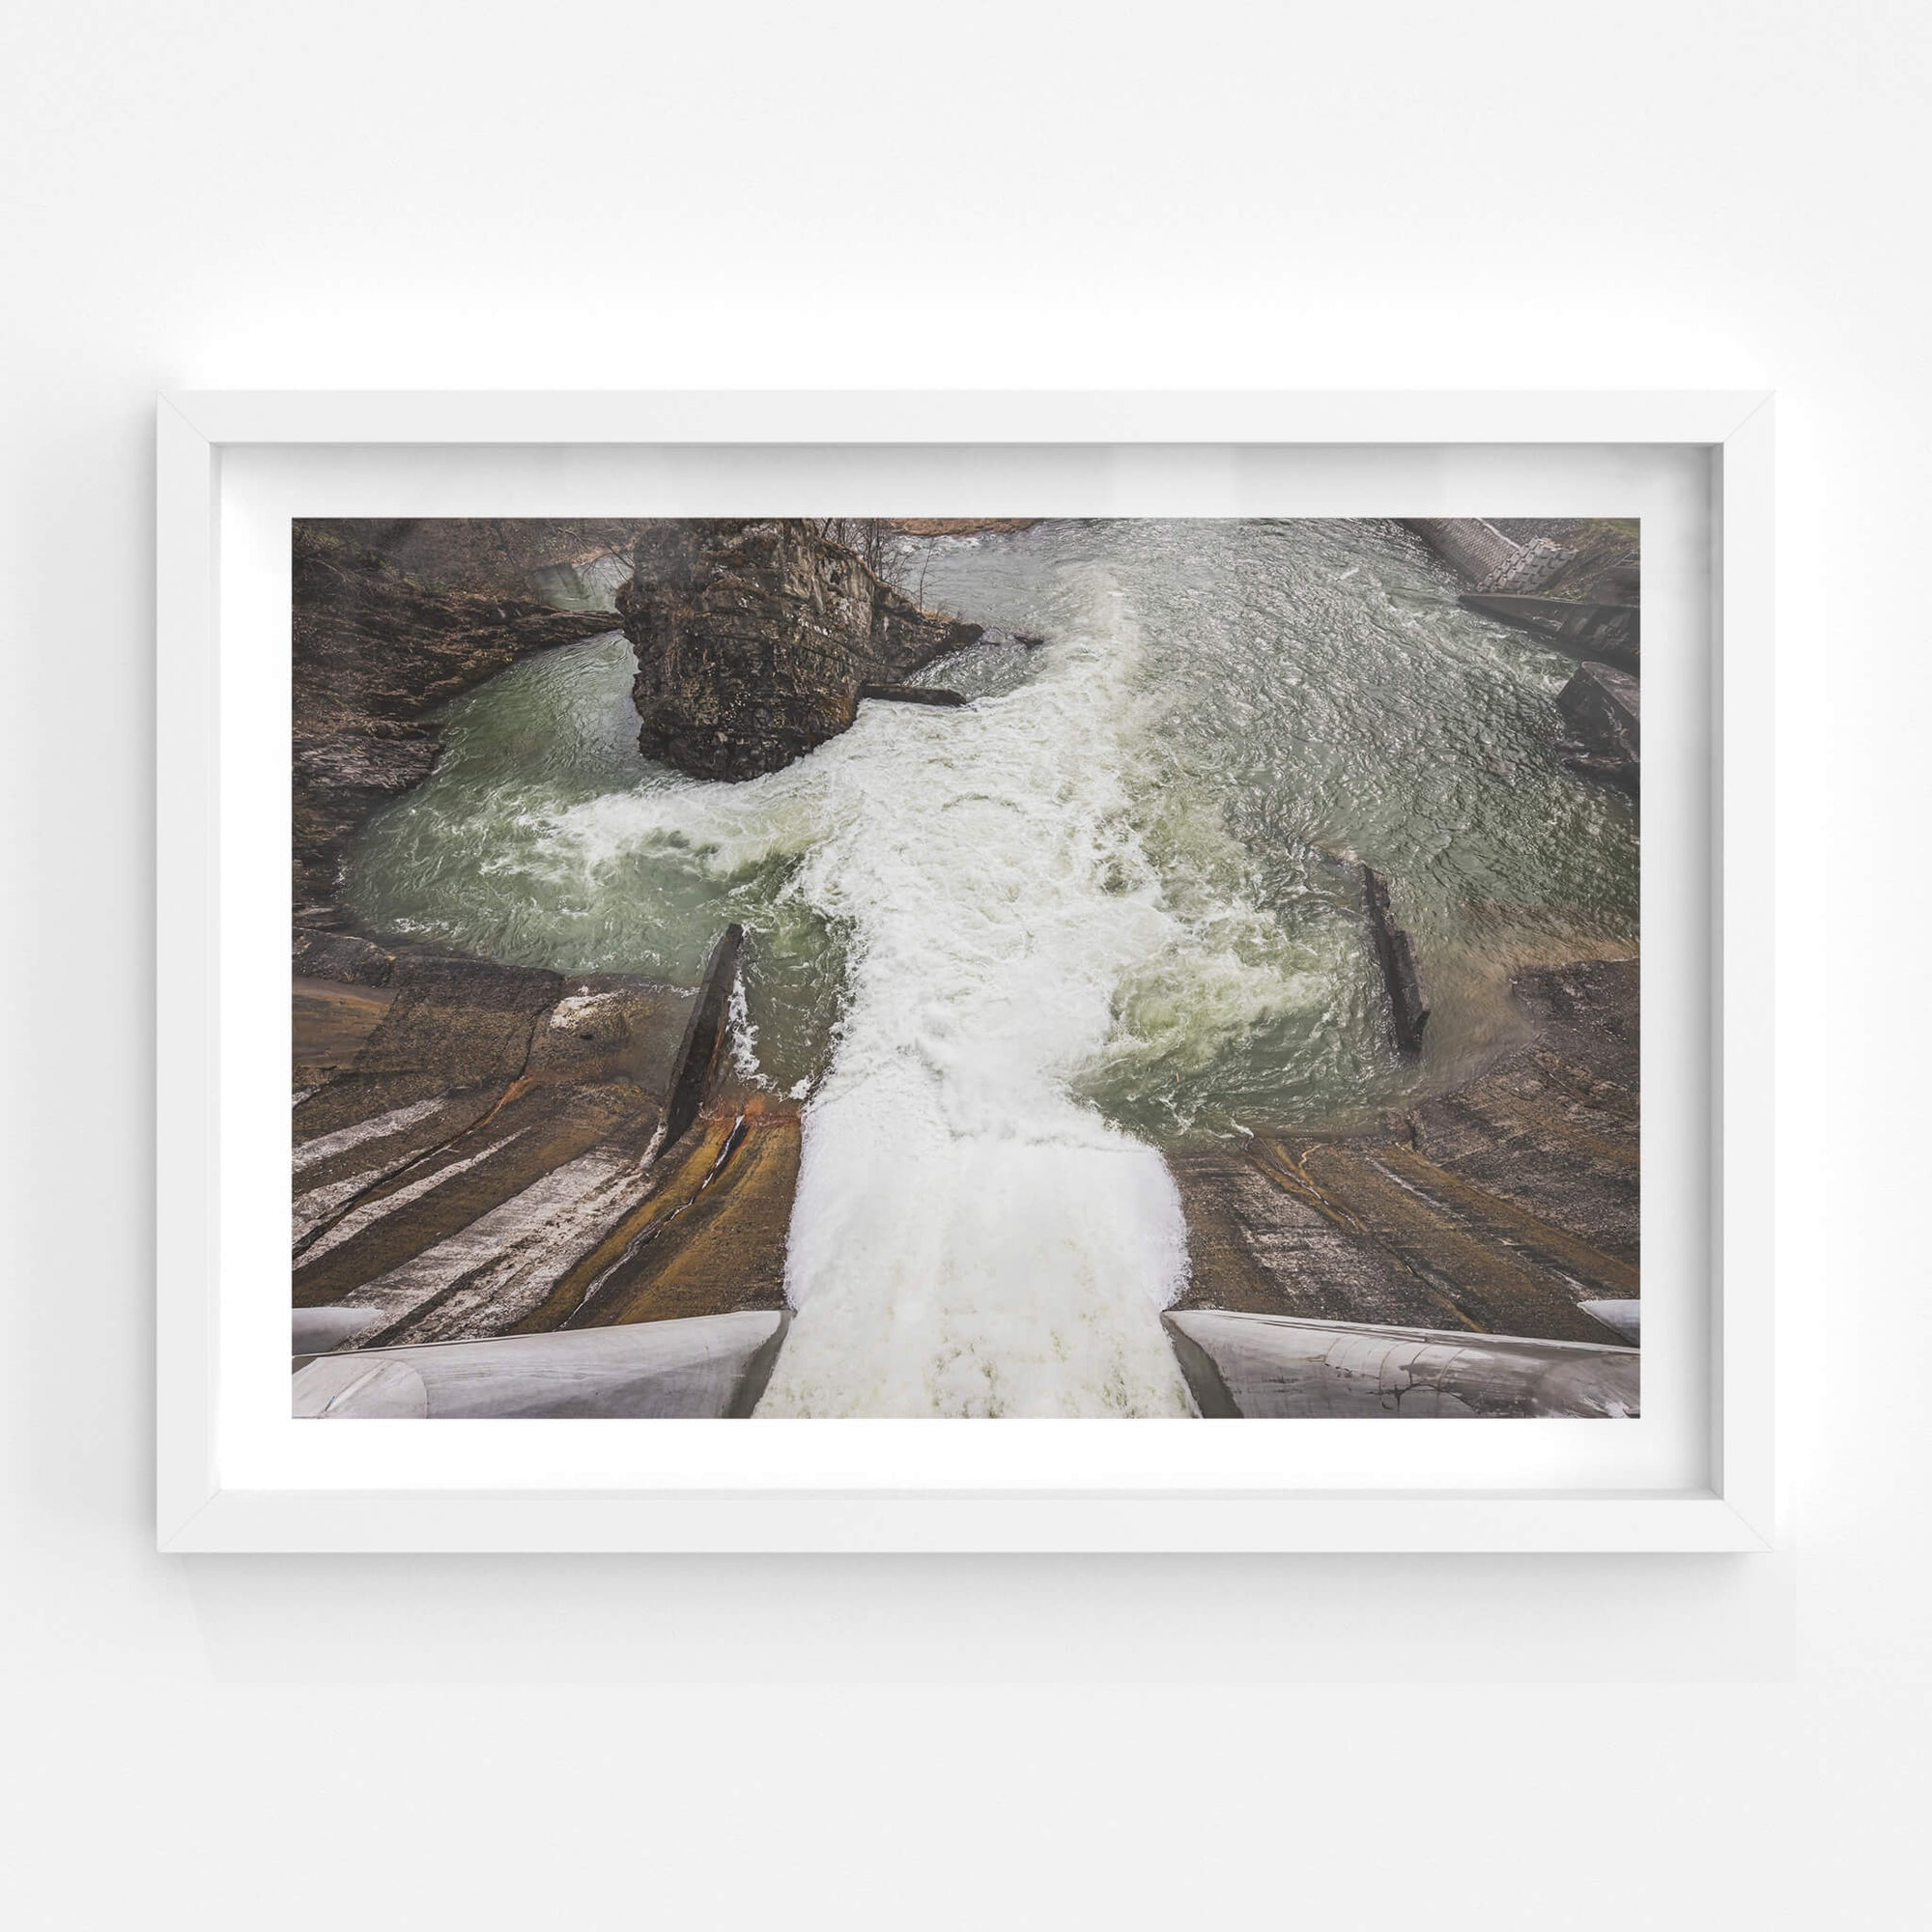 Spillway | Shimizusawa Thermal Power Plant Fine Art Print - Lost Collective Shop